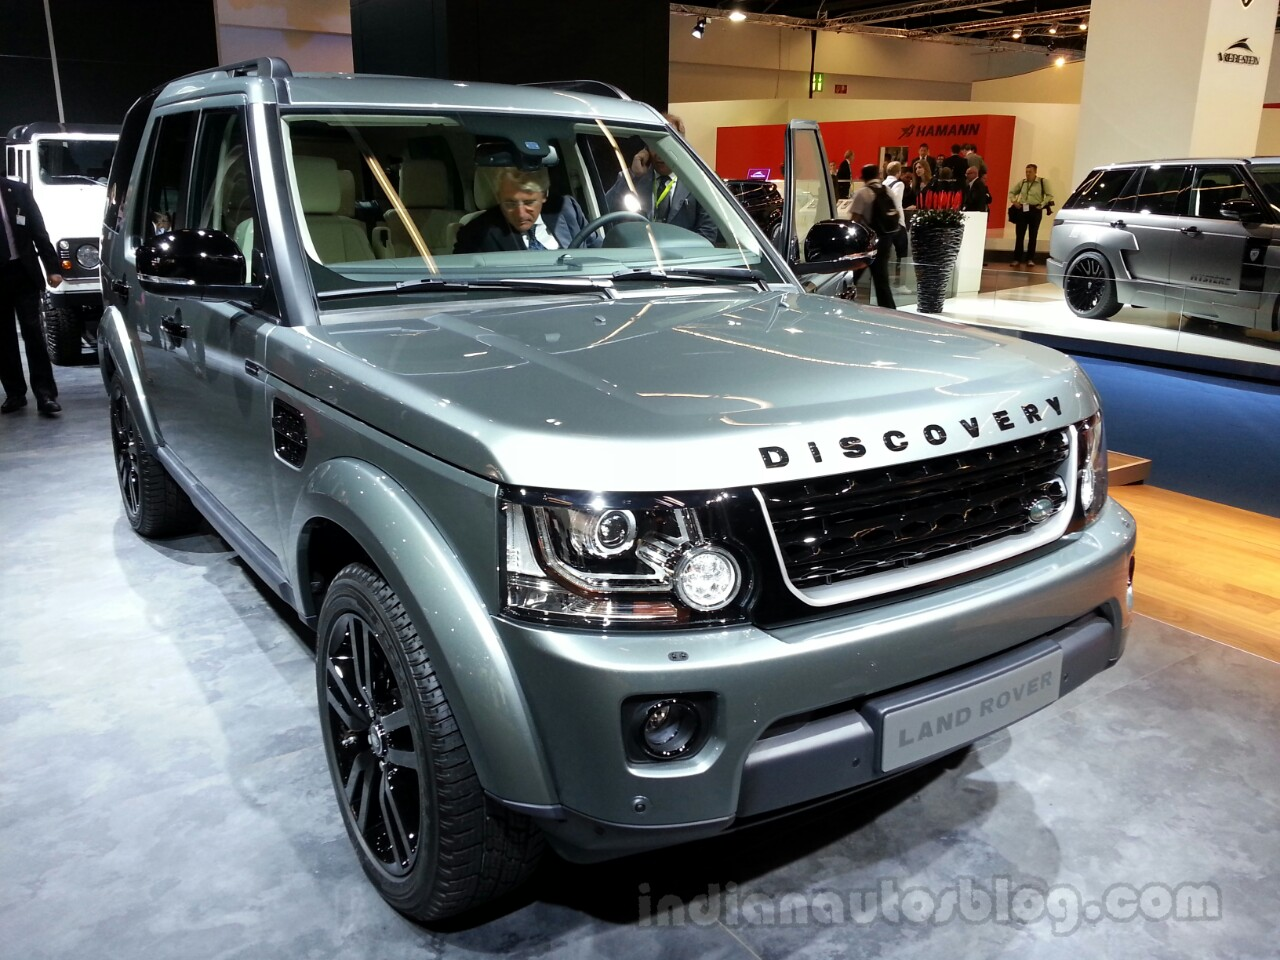 https://img.indianautosblog.com/2013/09/2014-Land-Rover-Discovery-Front-Left.jpg